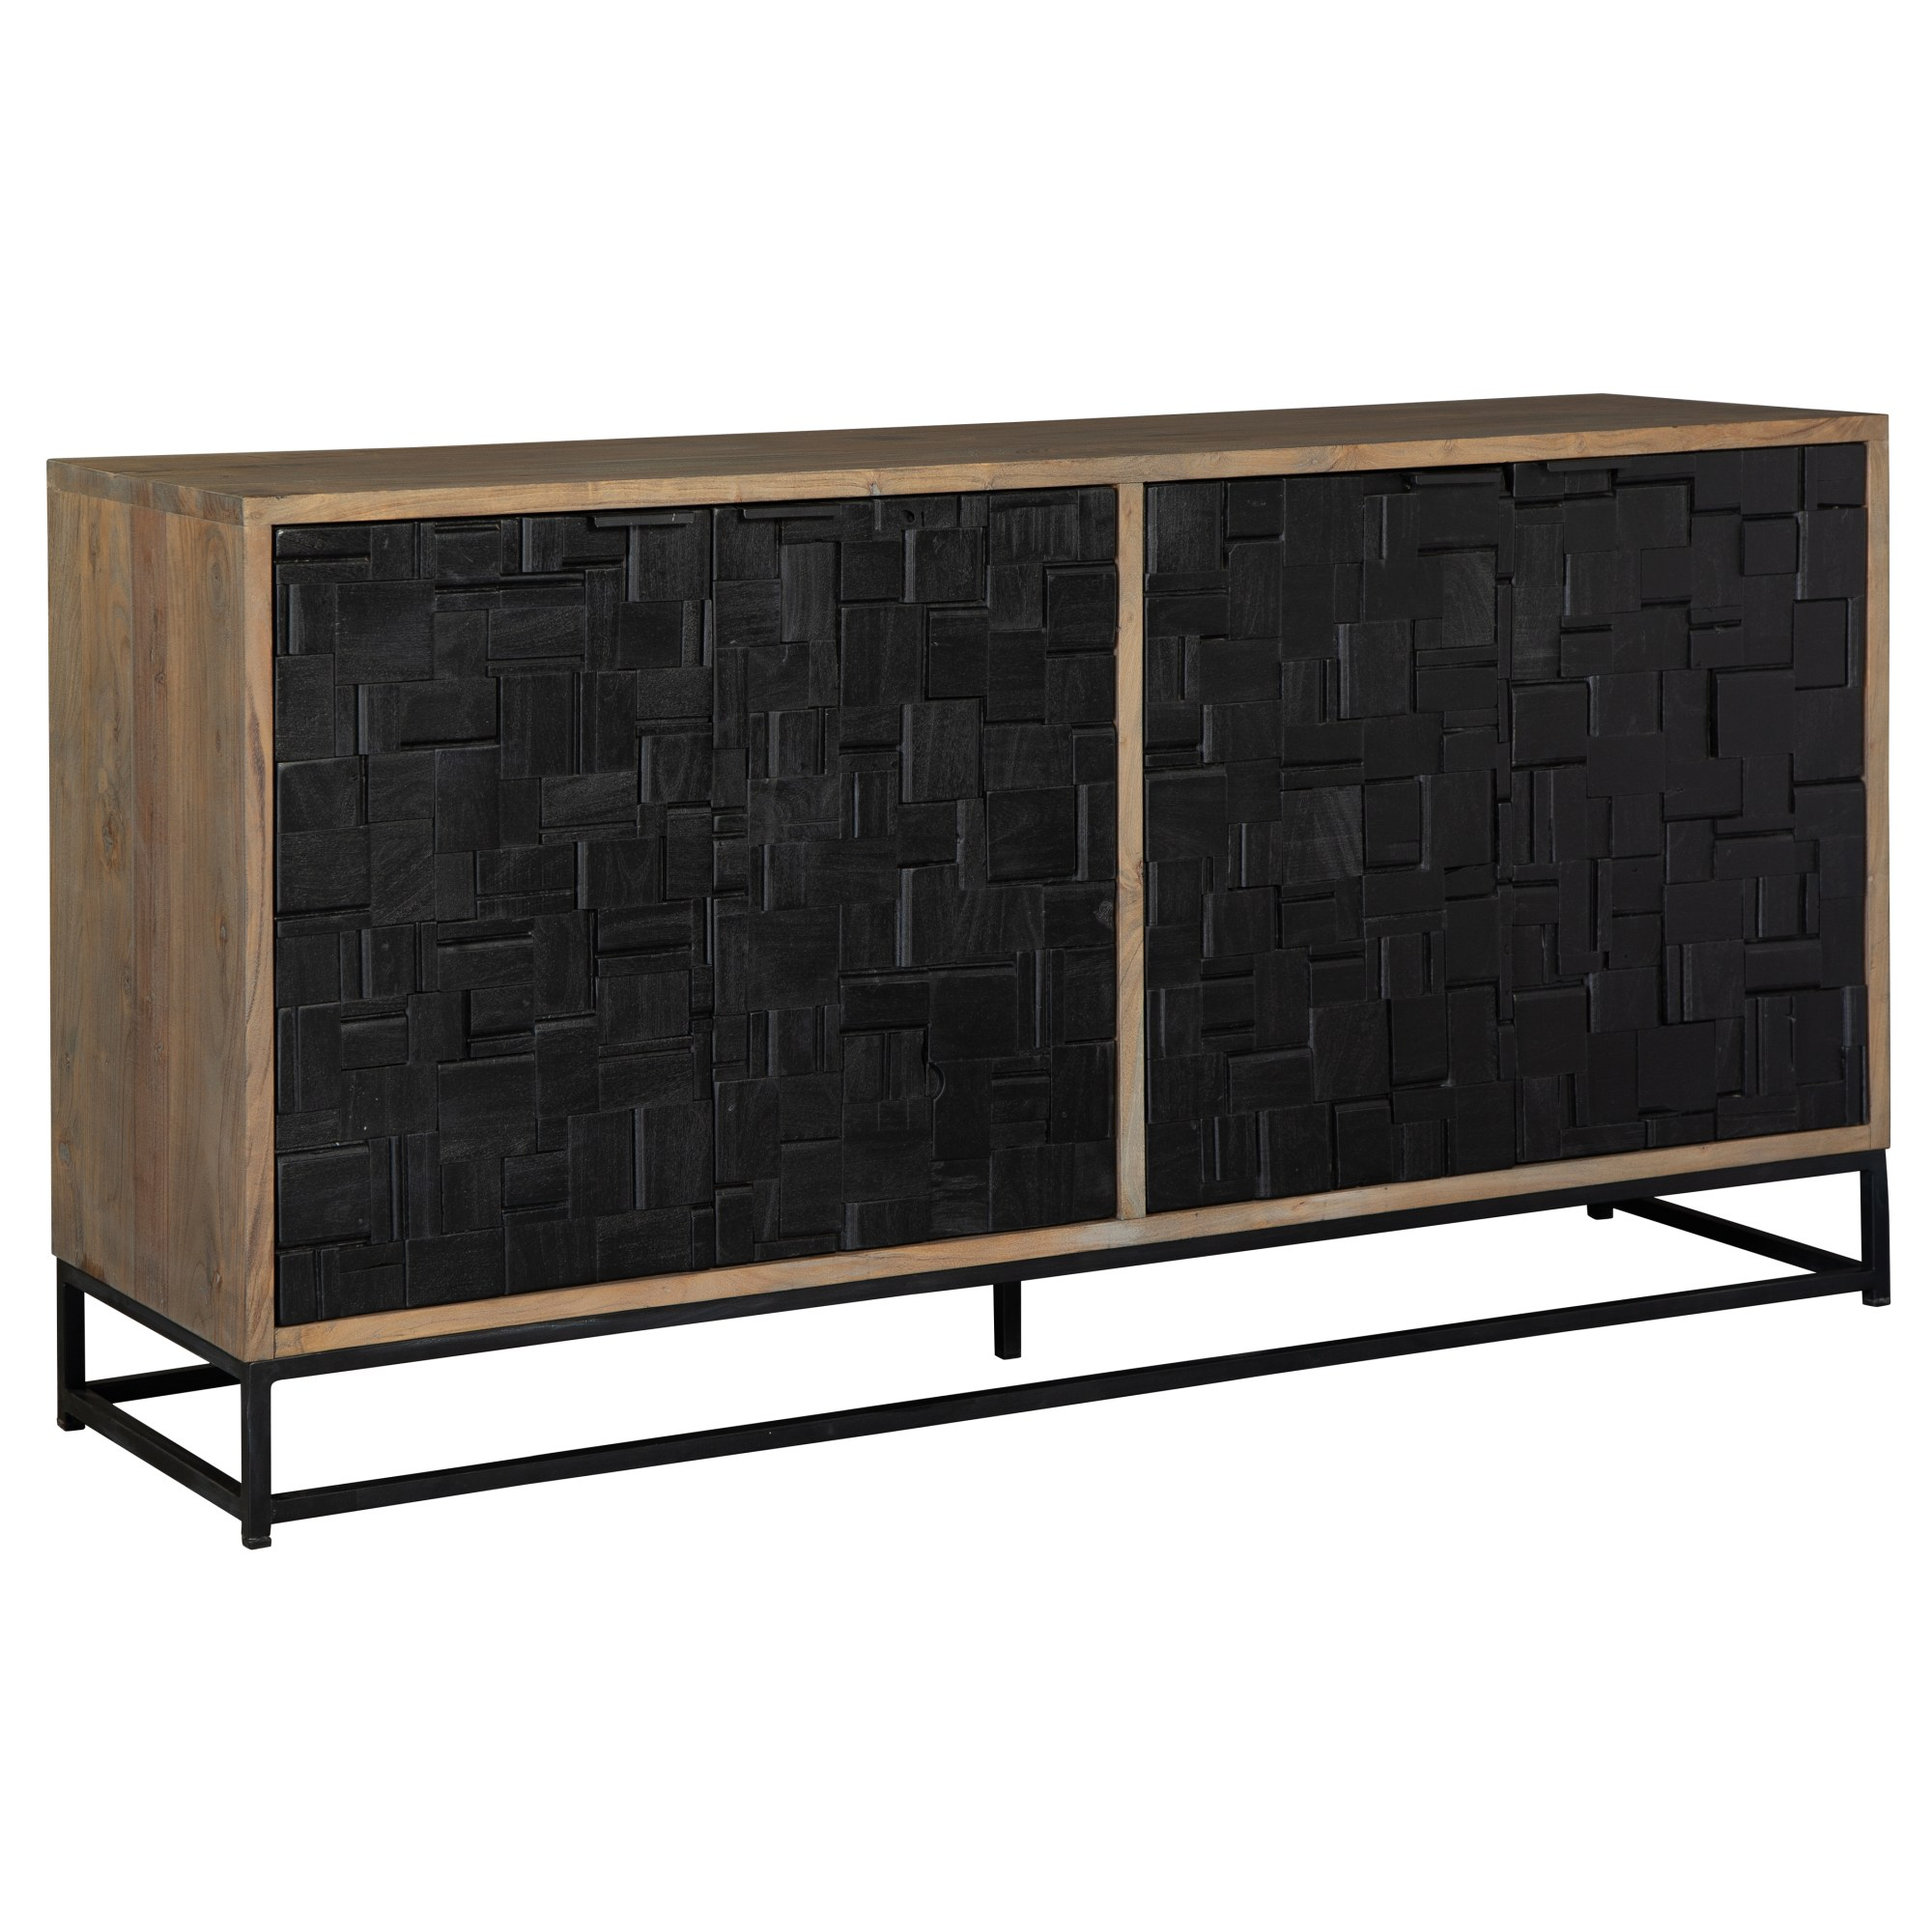 Image for 2-8340 Scrap Parquet Entertainment Center from Hekman Official Website